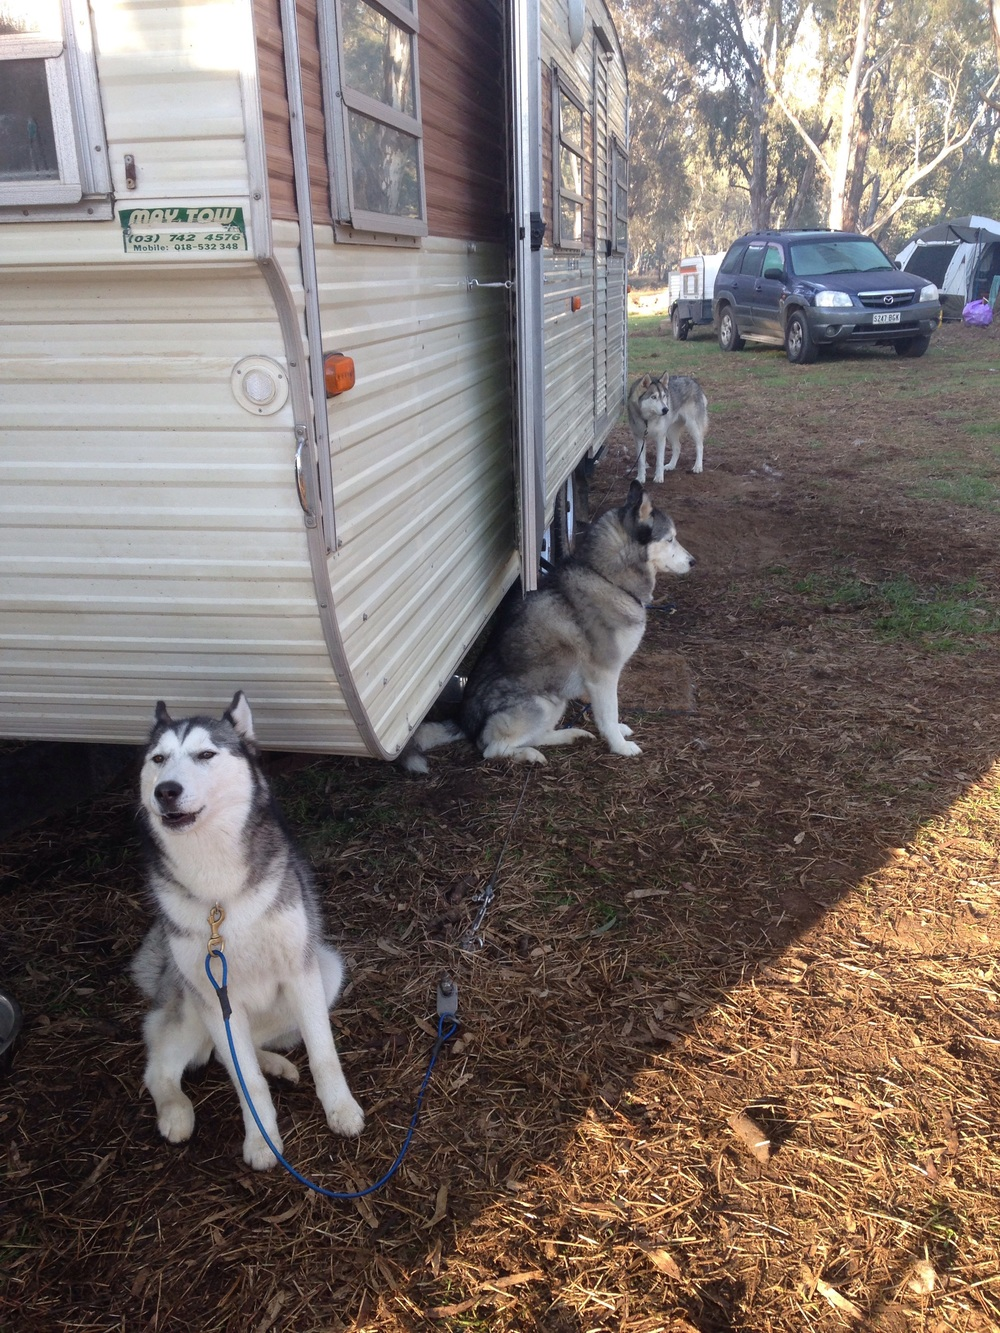 Mia, Ishka and Czar on stake out. (Bolo made himself a nice spot under the caravan.)